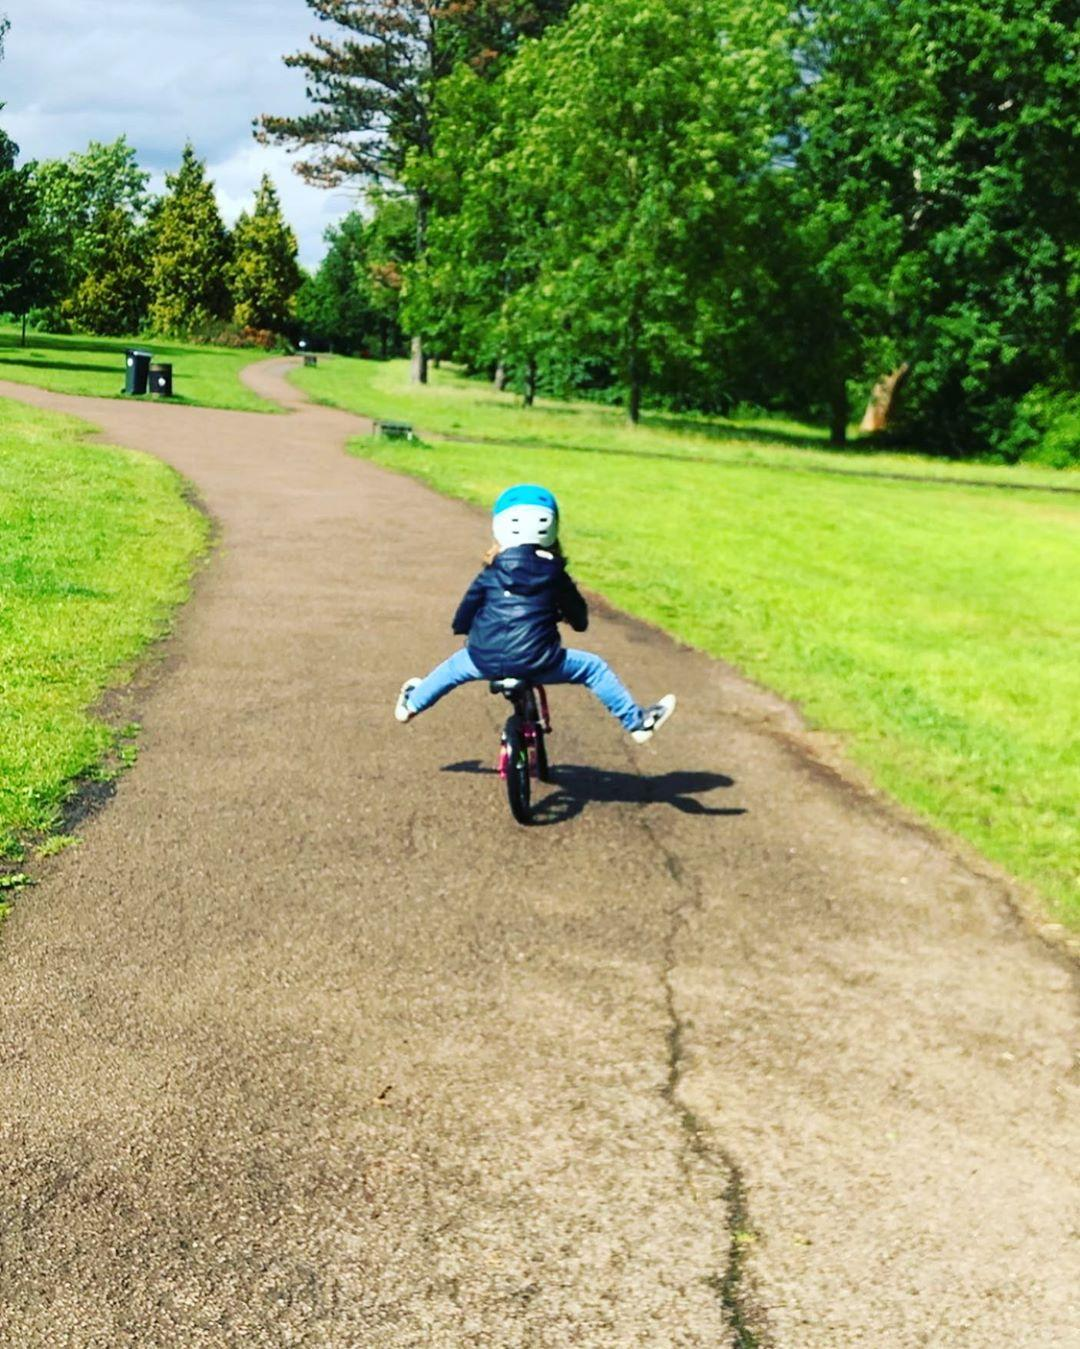 young girl scooting along on her balance bike in the park with both legs off the floor having fun. taken by instagram @ kit_in_the_city